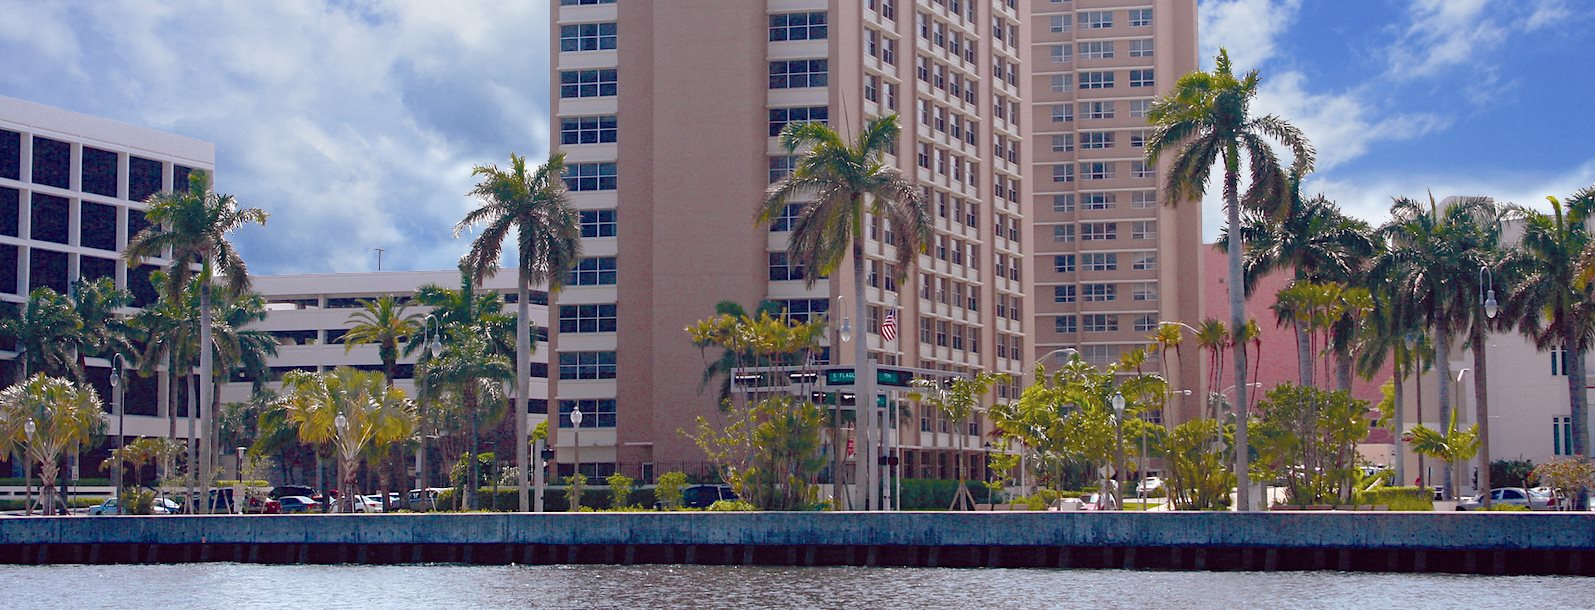 apartment tower surrounded by lush palms in front of the water